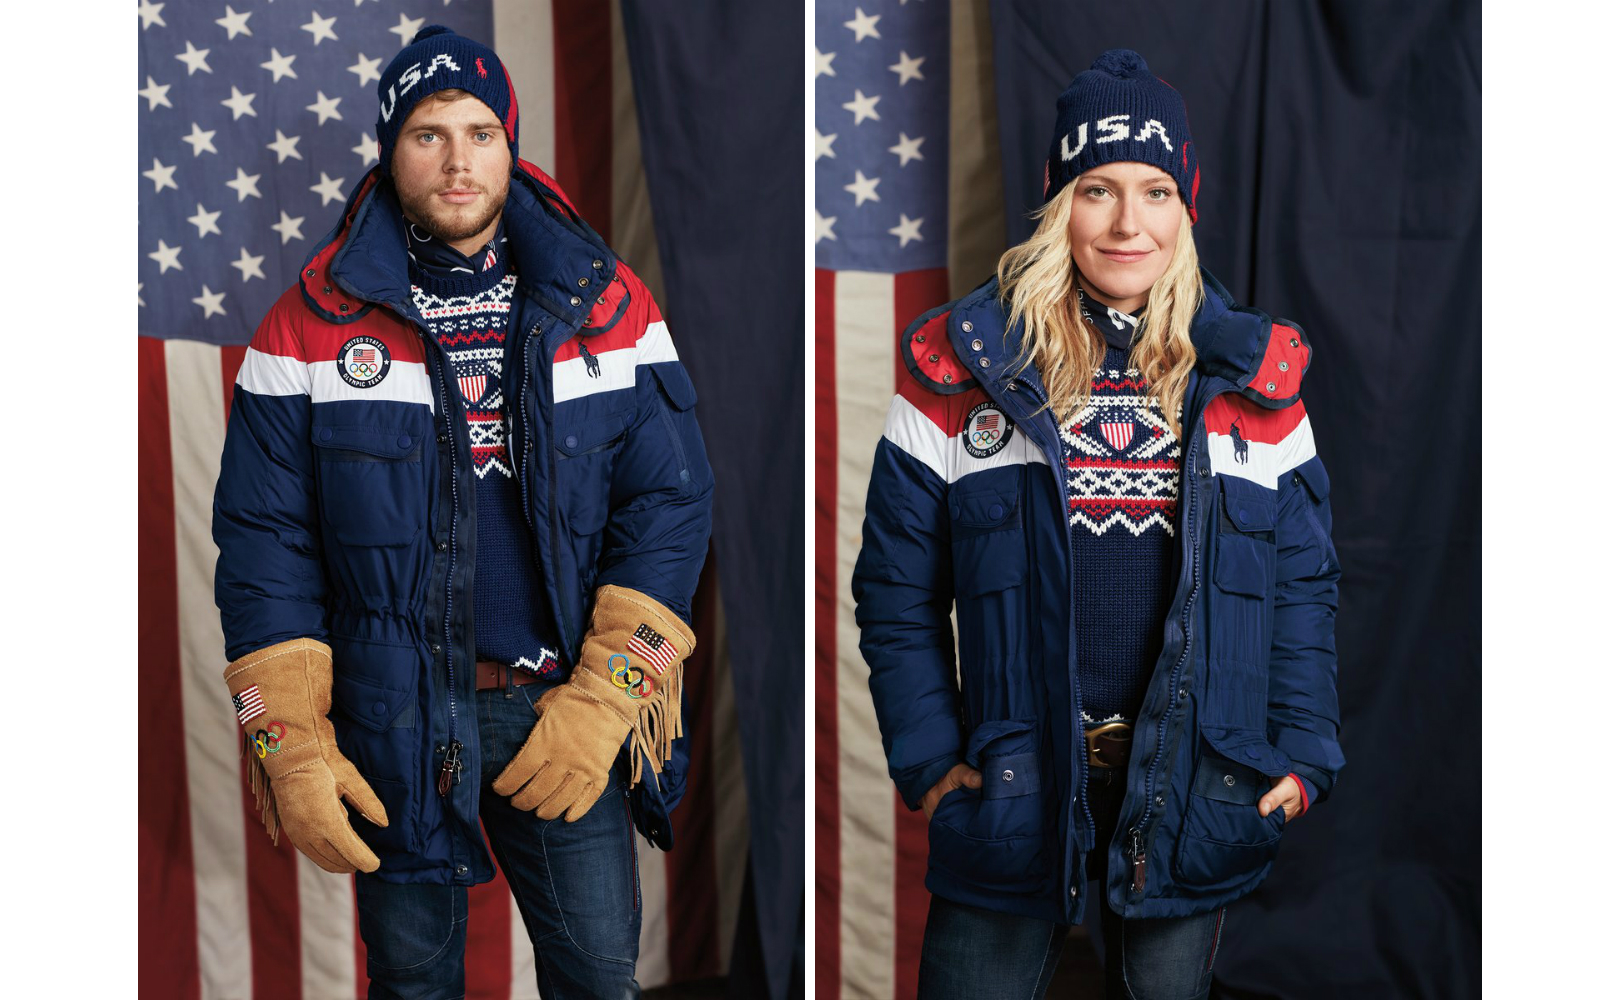 Ralph Lauren Made Self-heating Jackets for Team USA Olympic Athletes — and You Can Get One Too